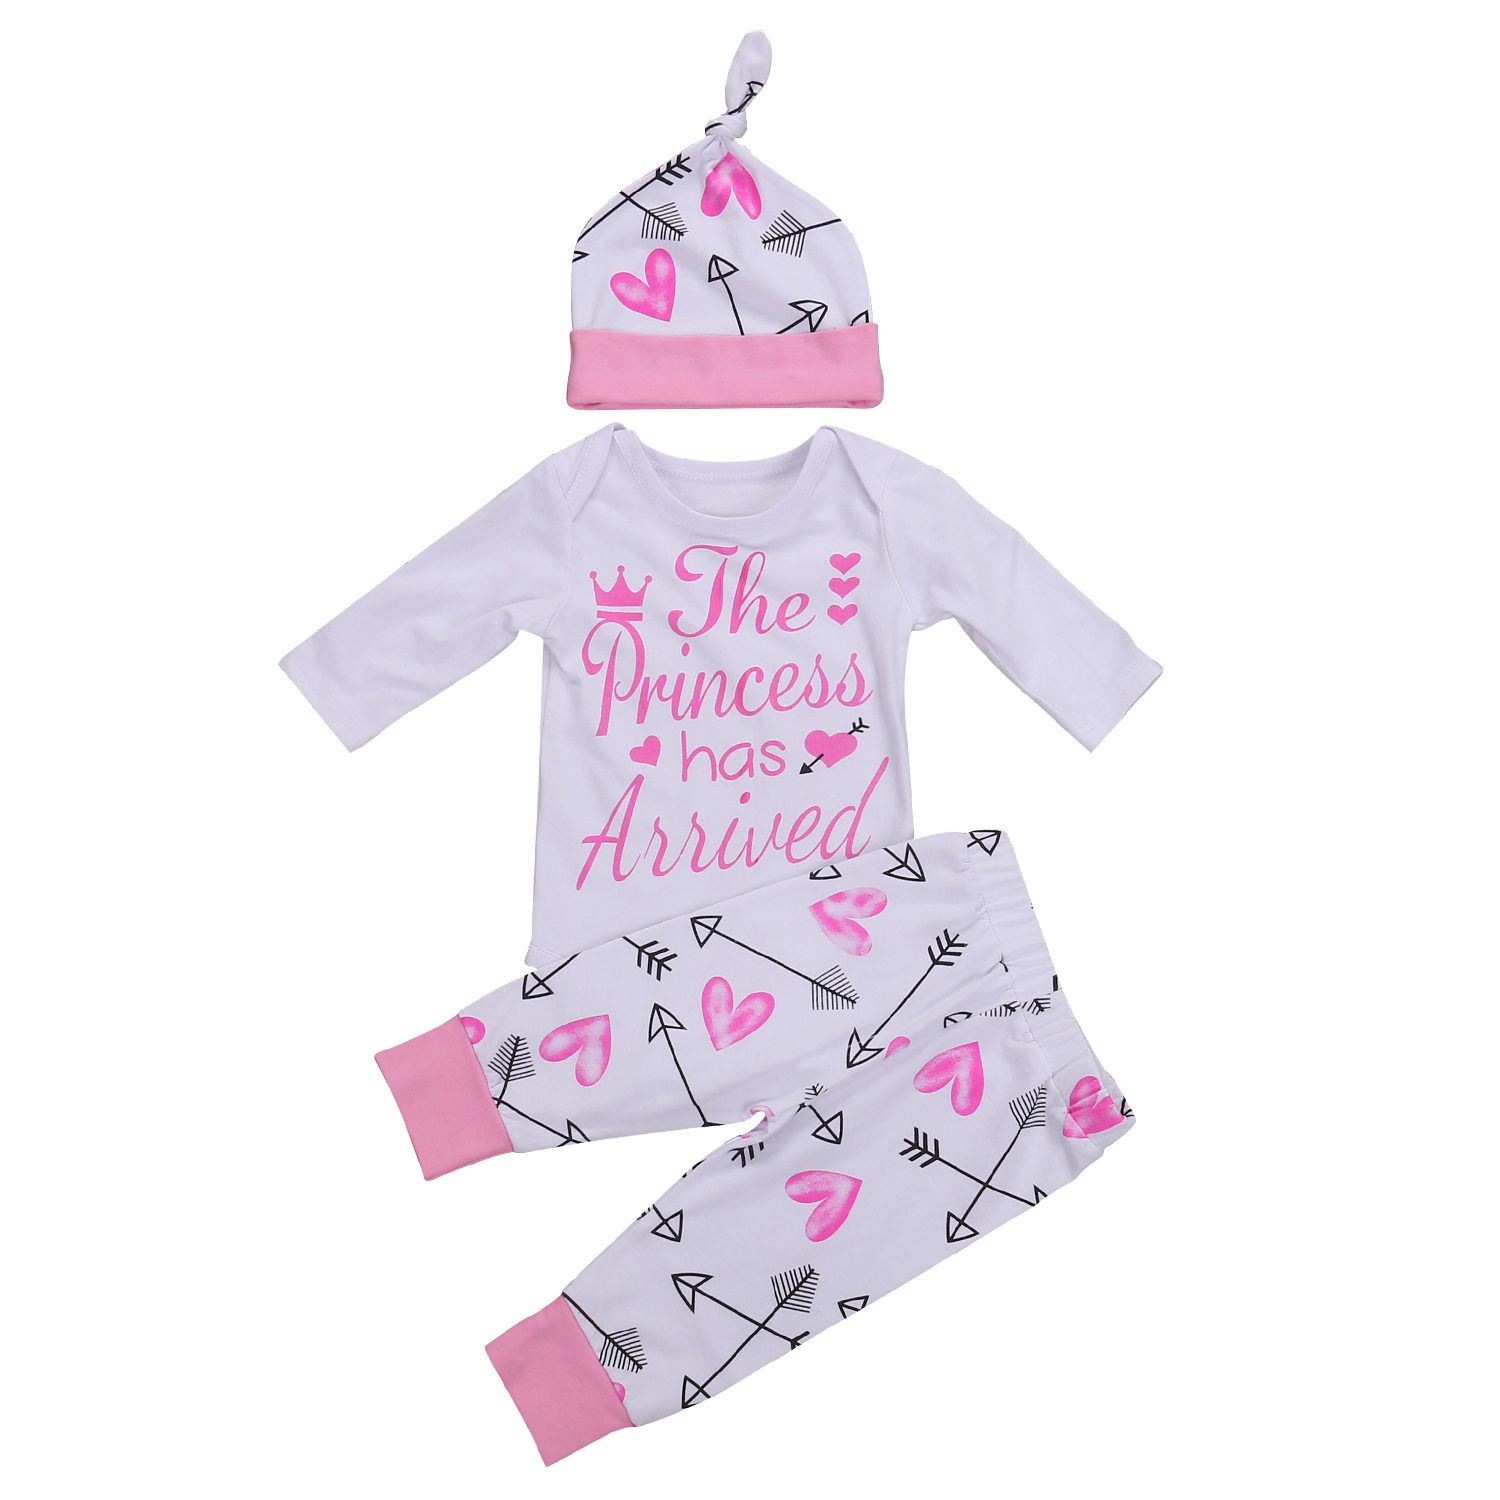 Pudcoco Newborn Infant Baby Kids Girls Clothes Long Sleeve Romper Jumpsuit+Pants+Headwear 3pcs Cute Outfits Baby Set